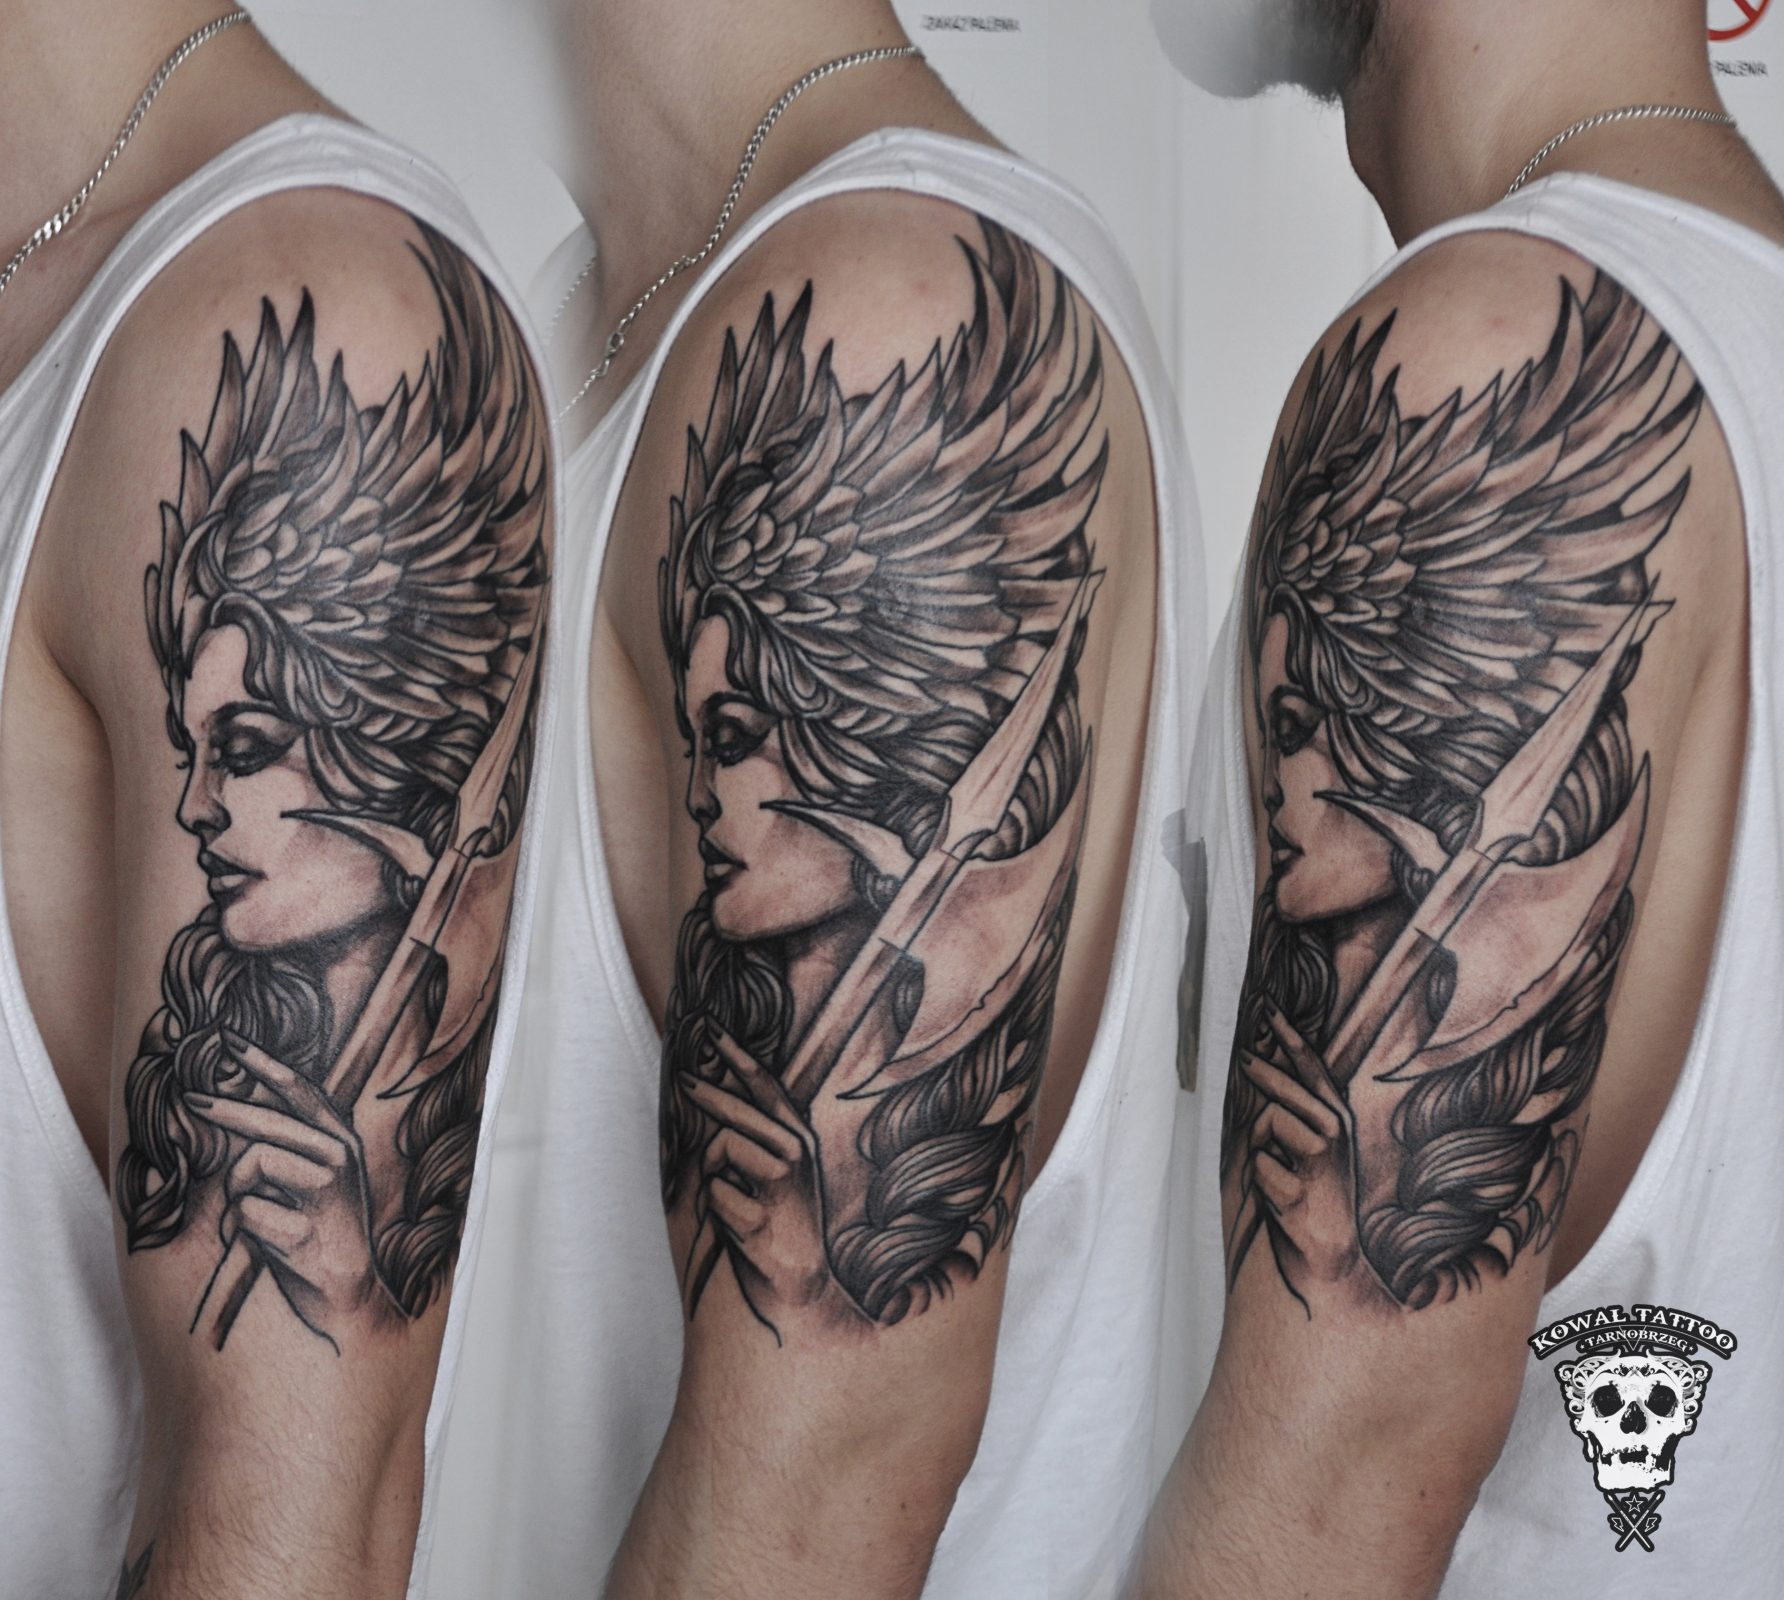 Kowal_tattoo fb